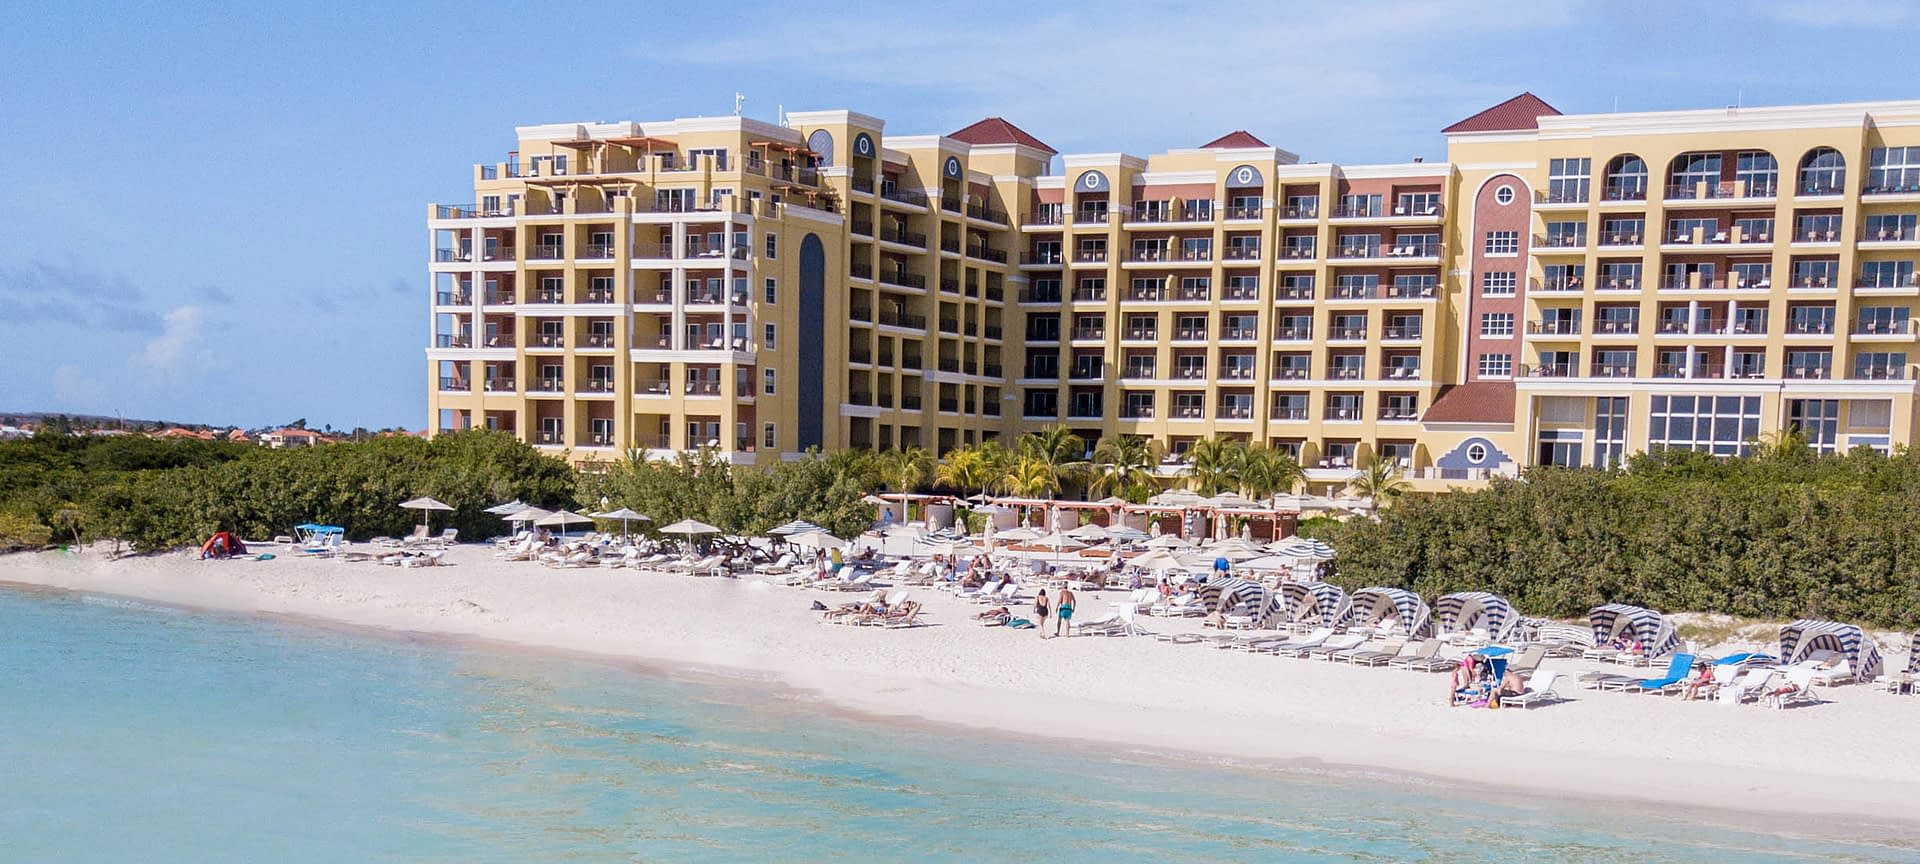 The Ritz Carlton, Aruba